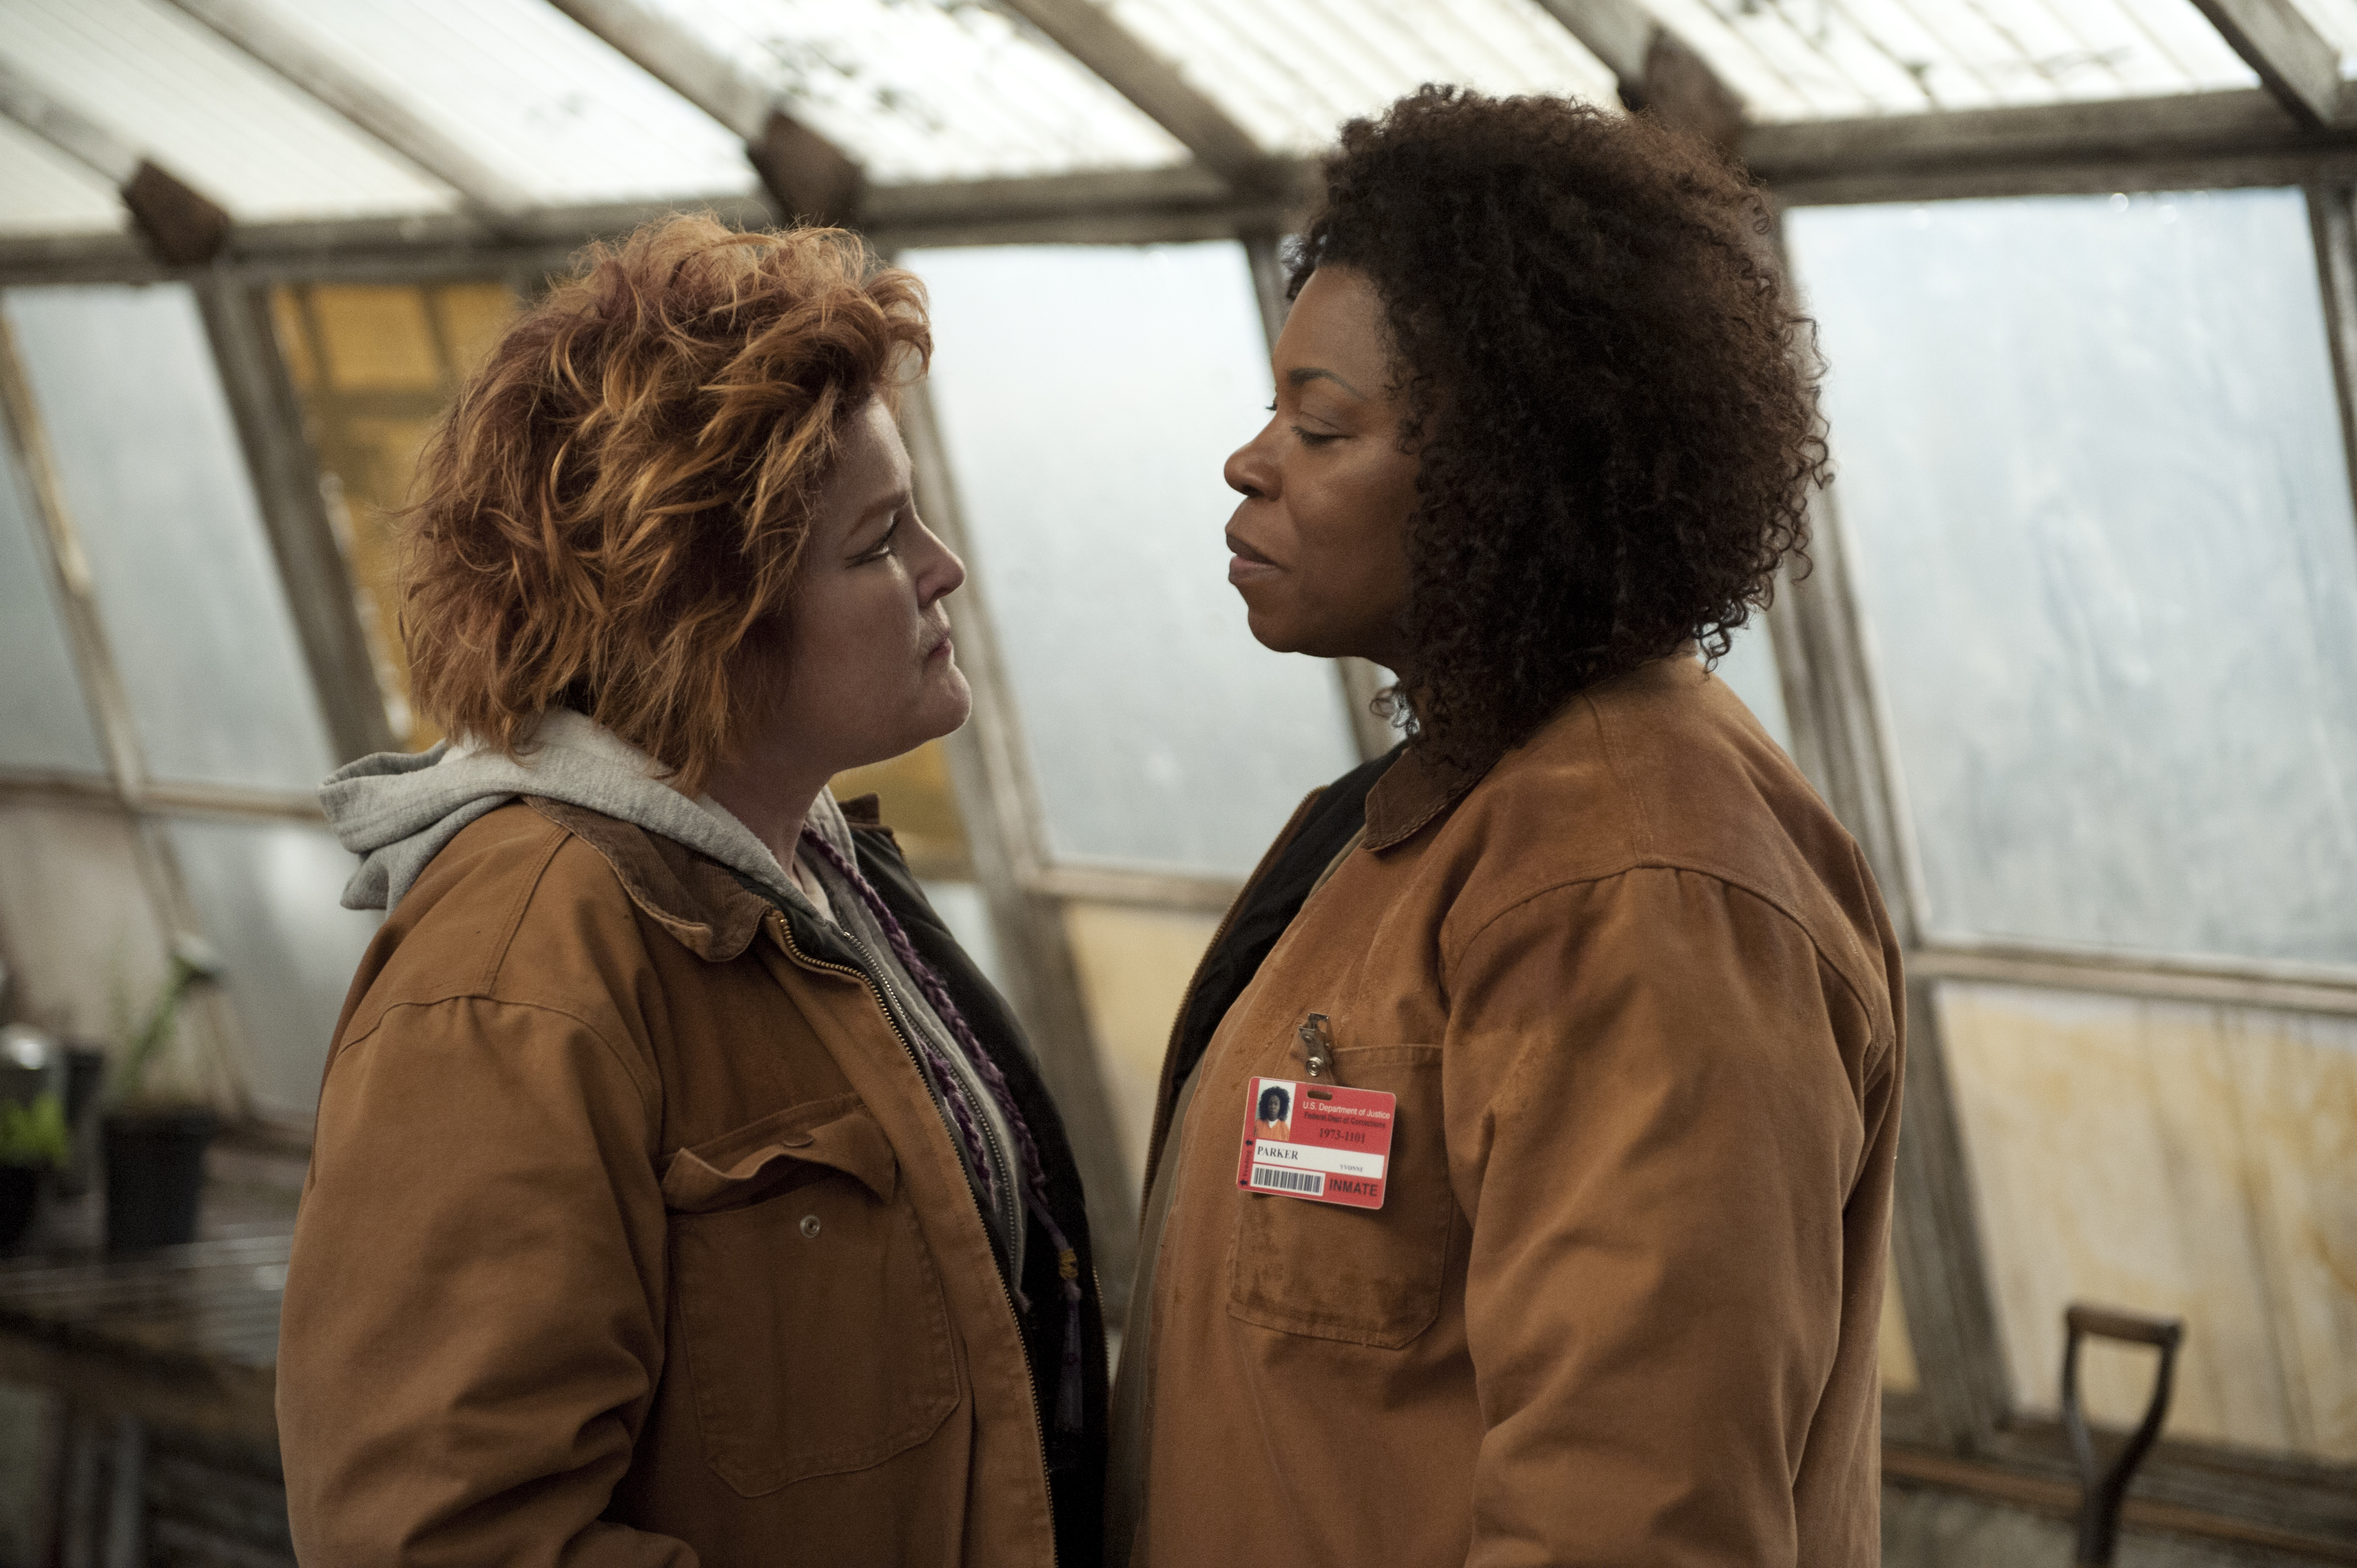 Kate Mulgrew (L) and Lorraine Toussaint (R) in a scene from Netflix's Orange is the New Black